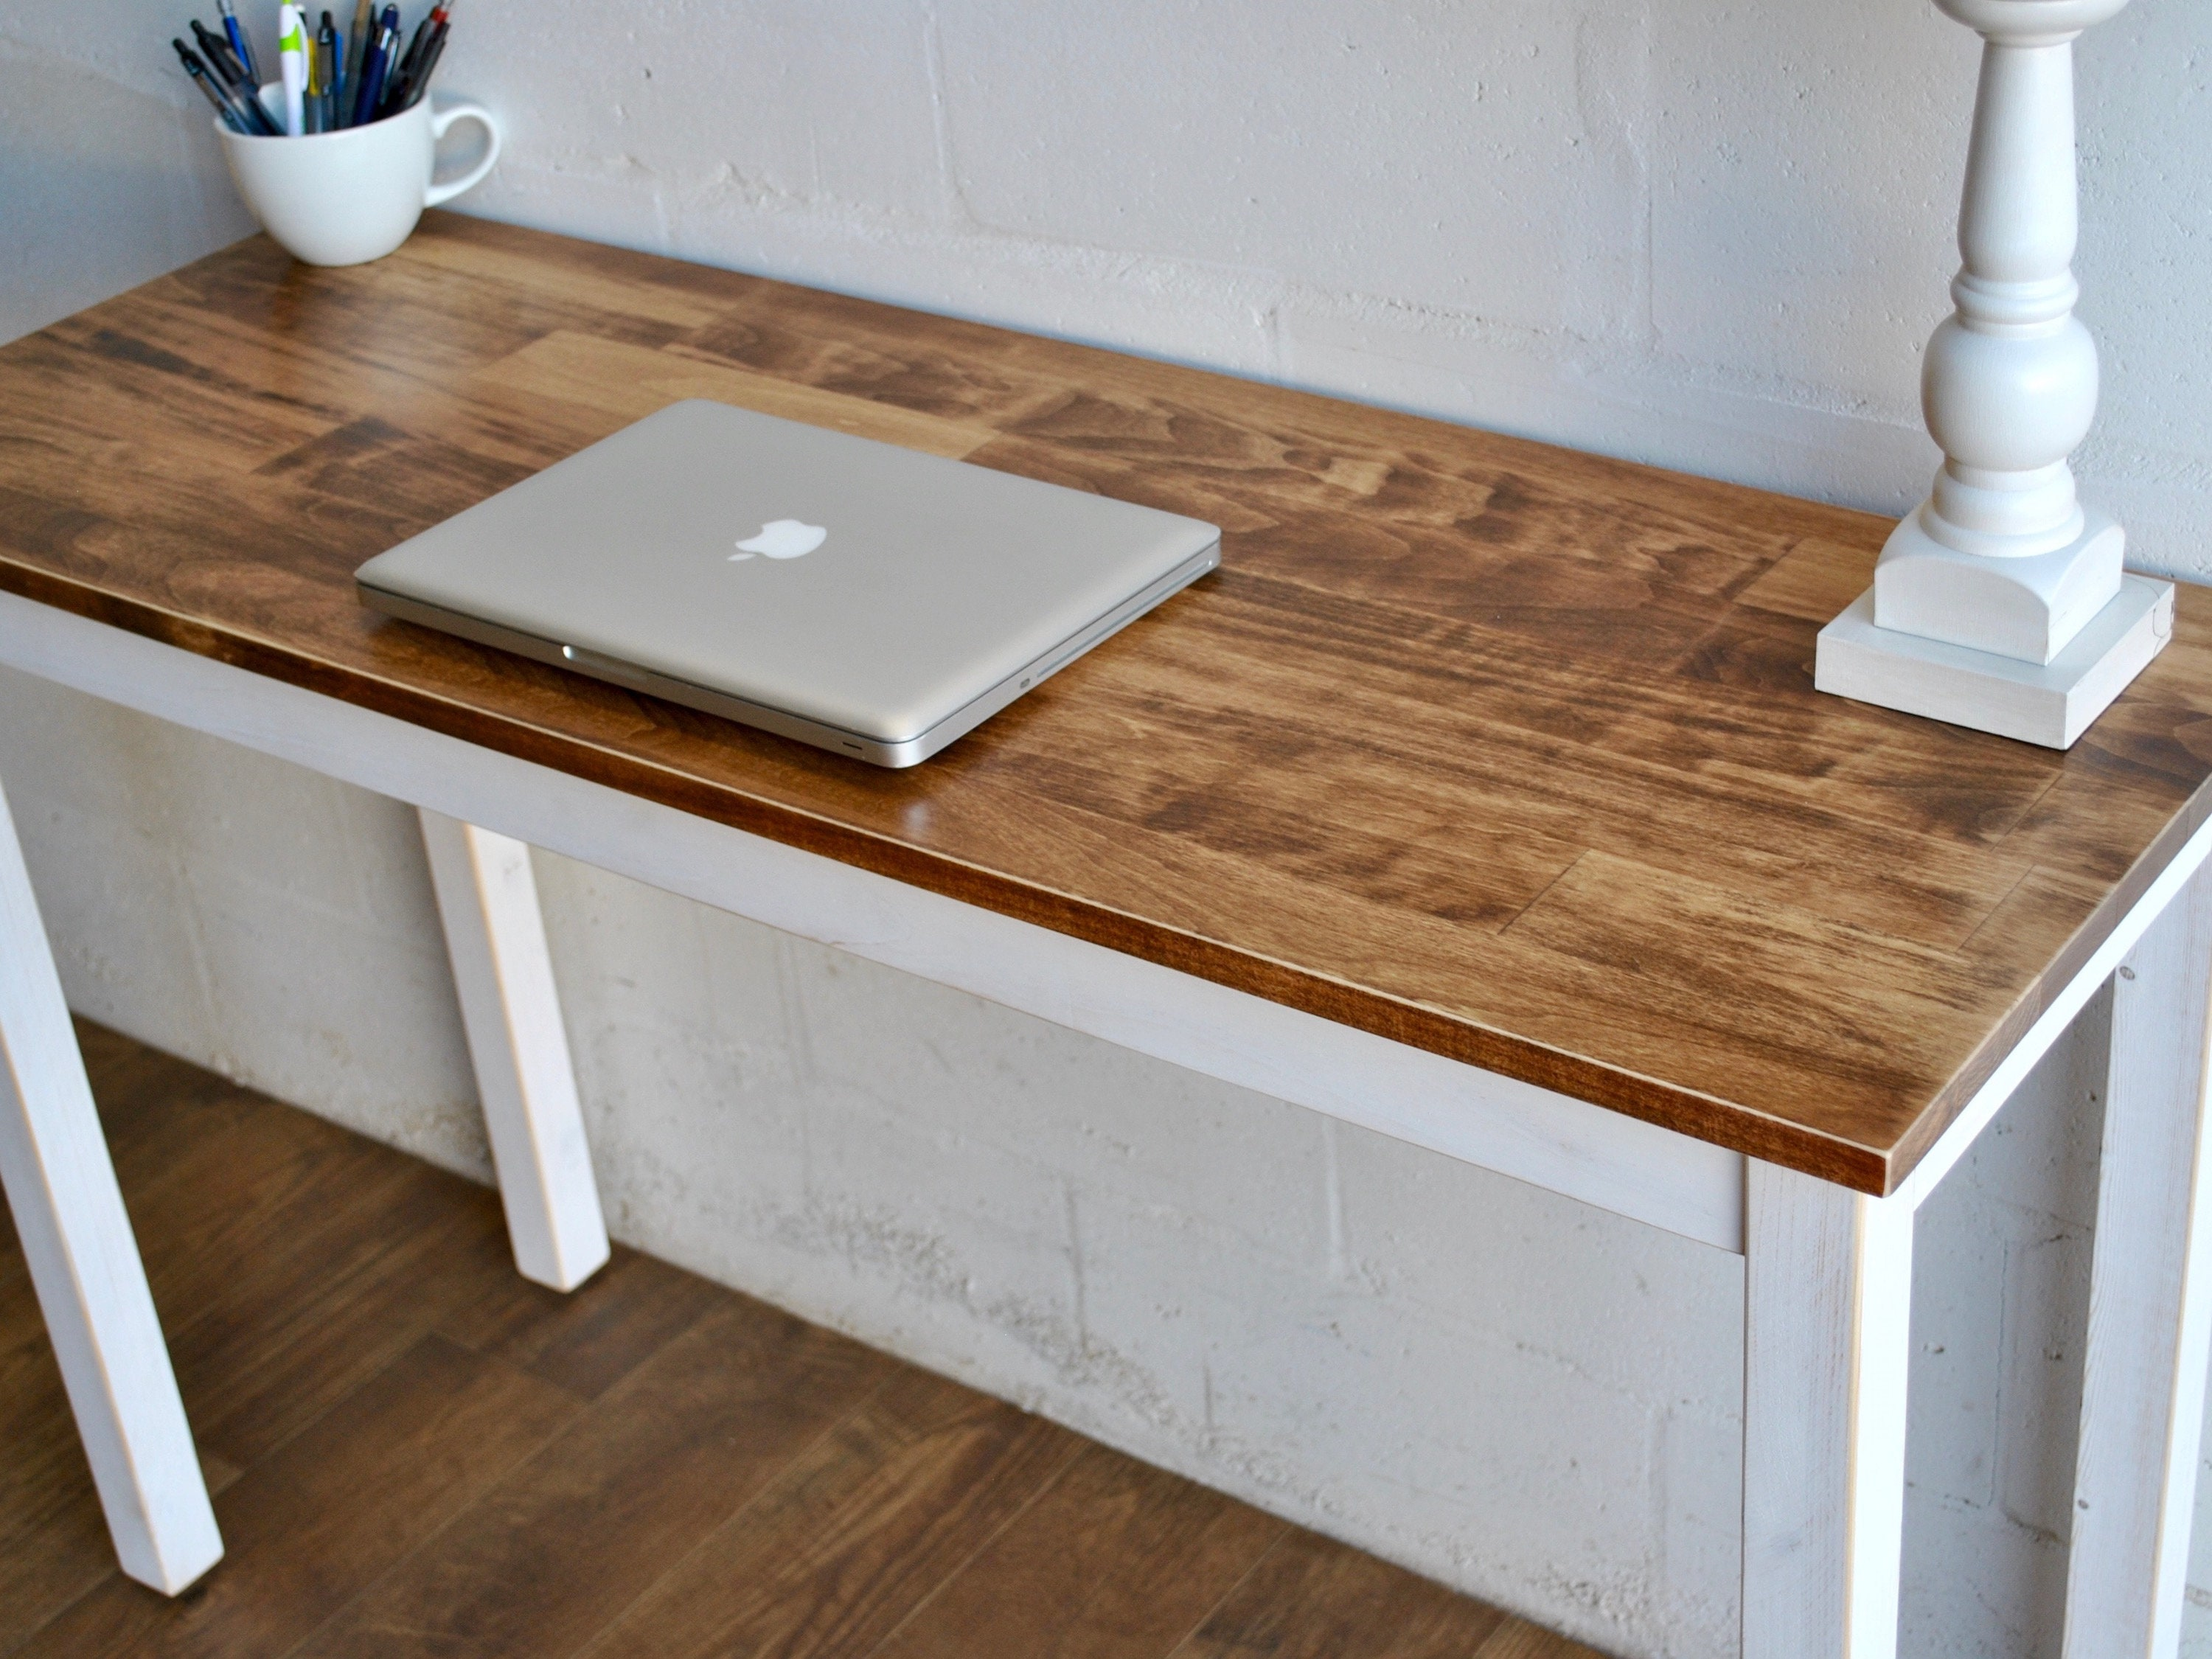 Cool Made To Order Solid Wood Desk Or Table Laptop Desk Download Free Architecture Designs Scobabritishbridgeorg